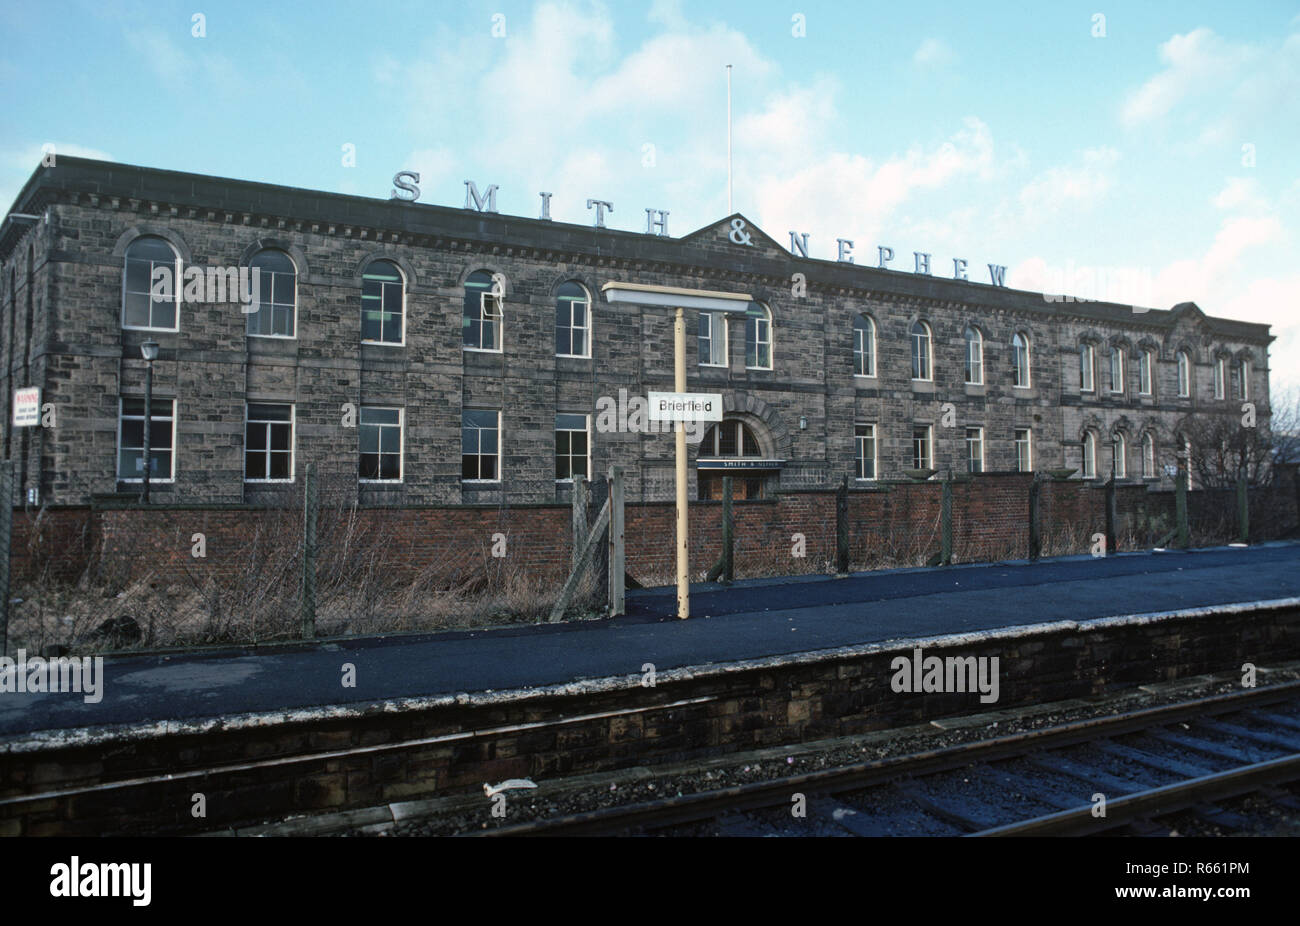 Smith and Nephew Mill at Brierfield on the British Rail Preston to Colne railway line, Lancashire, Great Britain - Stock Image